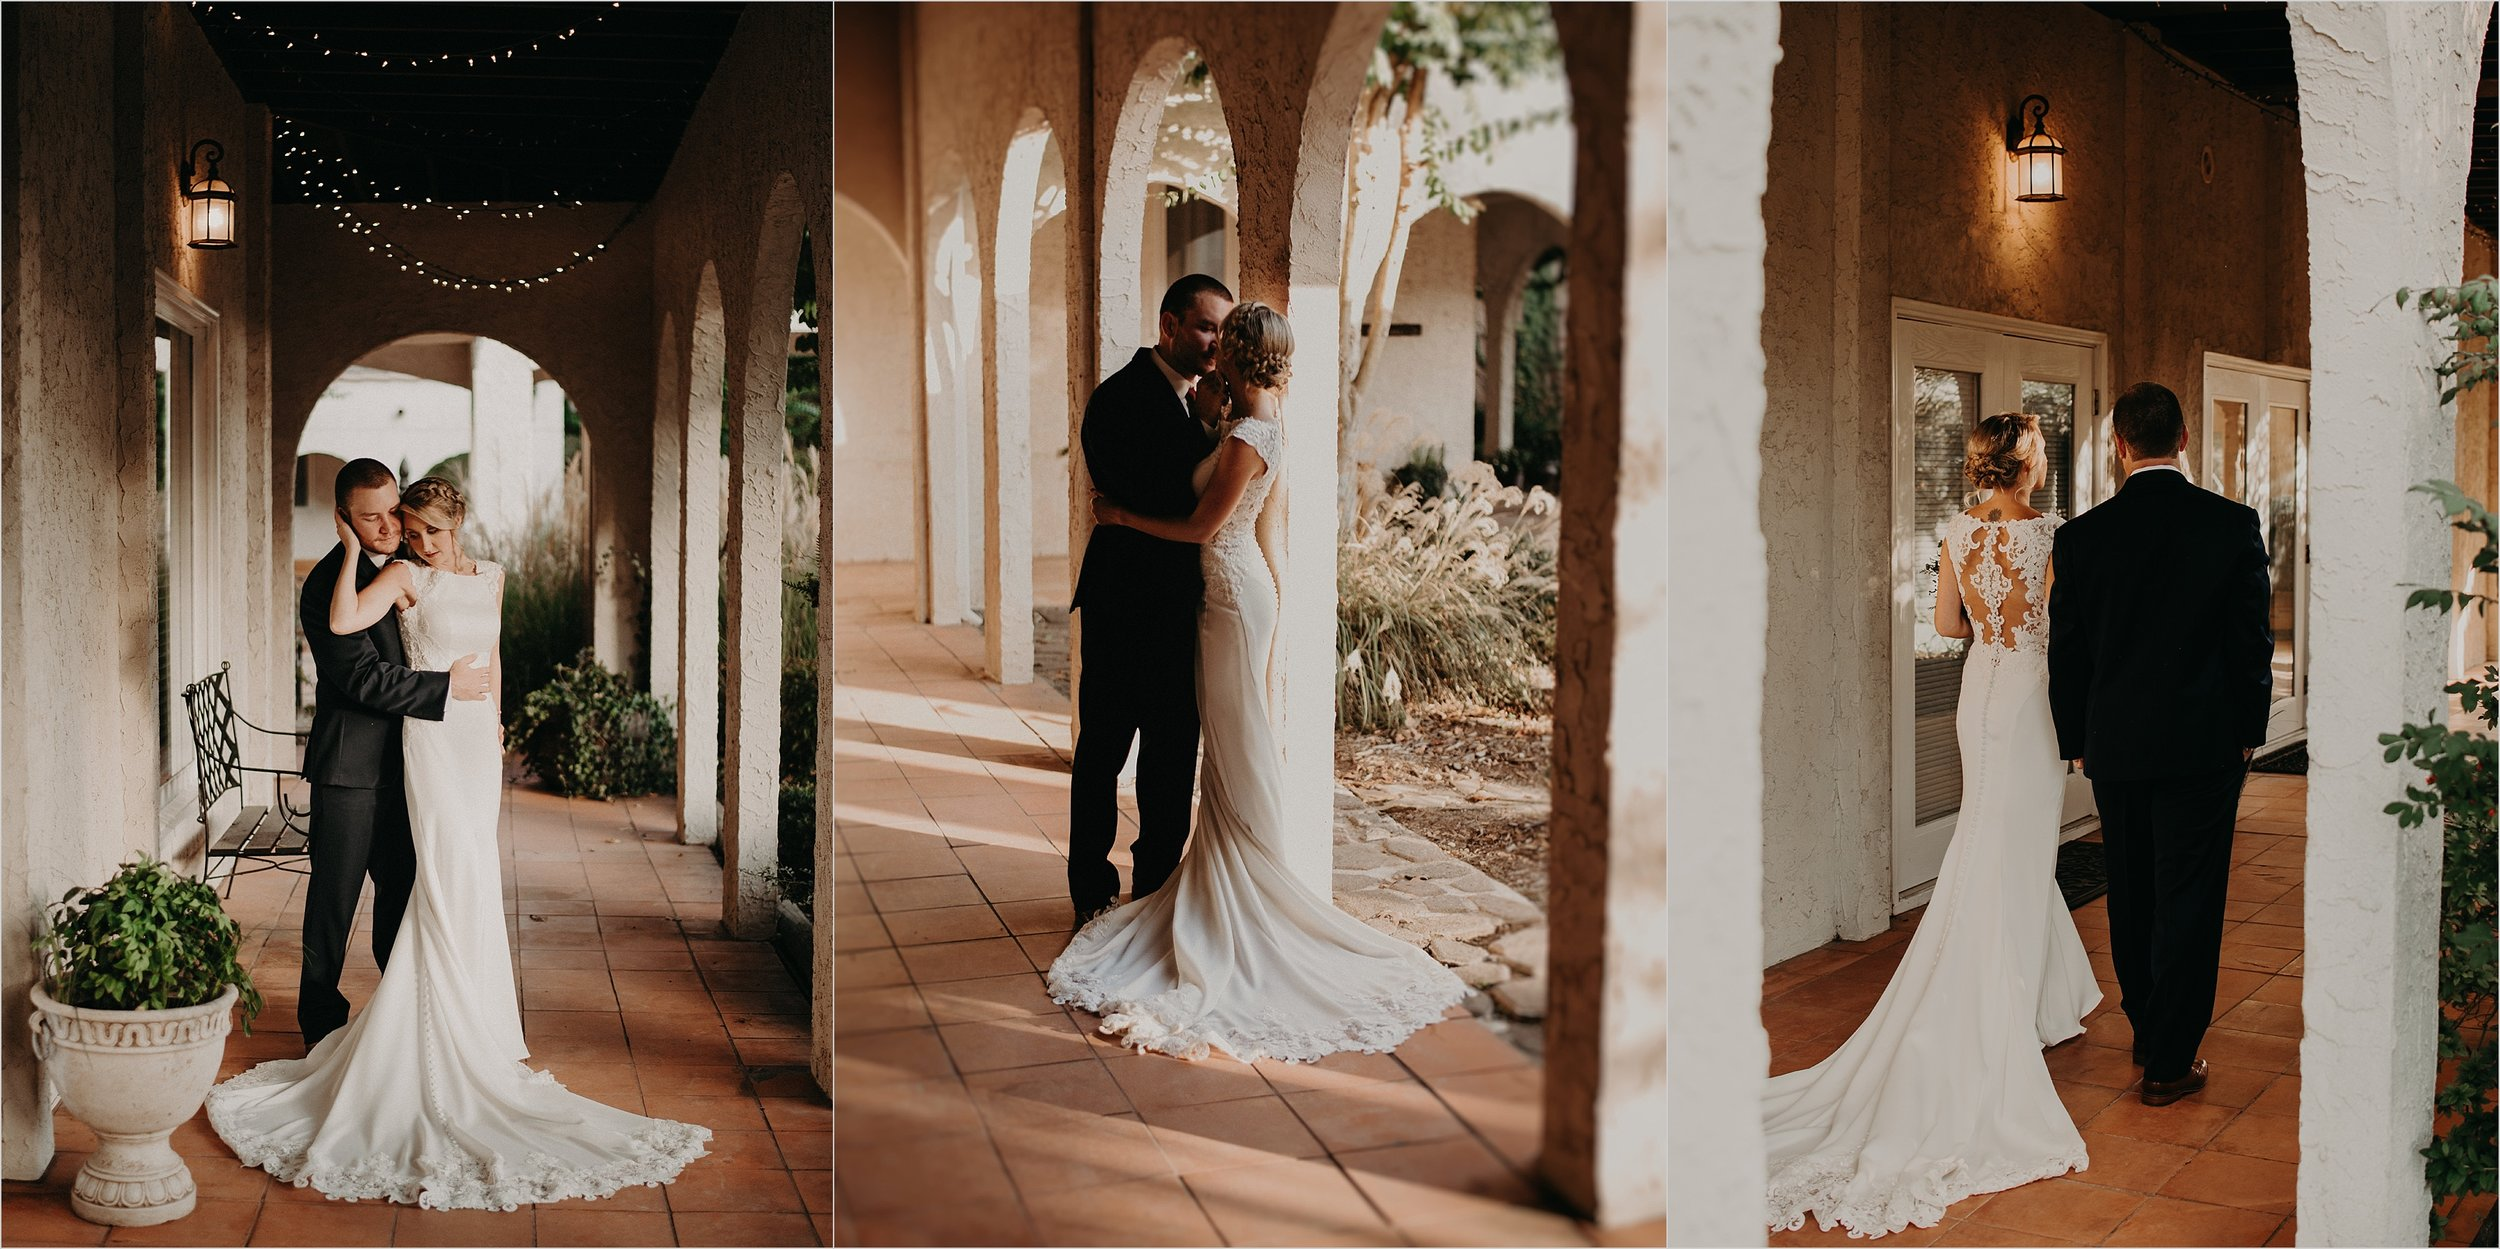 Villa inspired bride and groom portraits beneath arches at Tennessee Riverplace